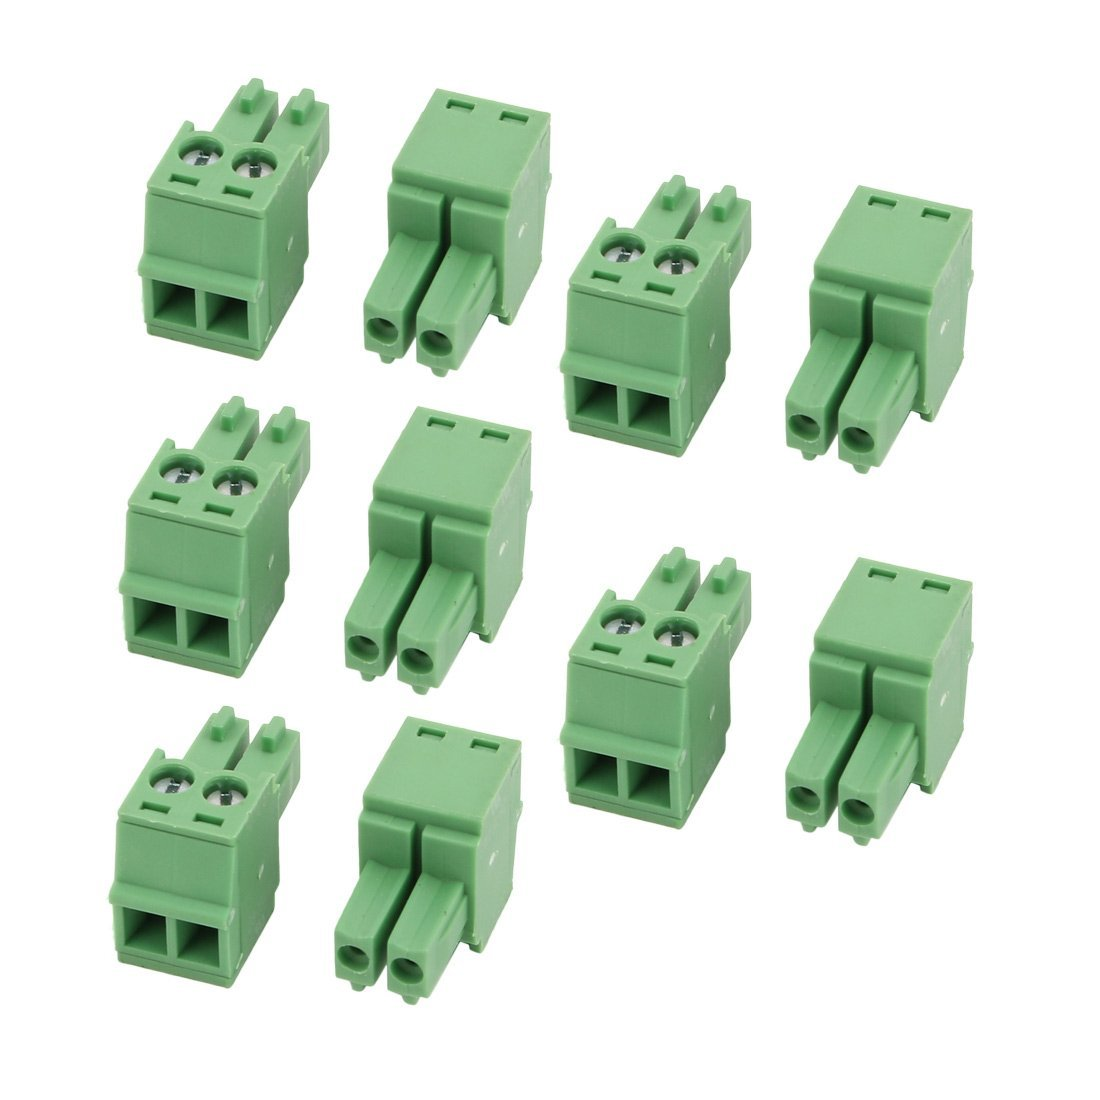 uxcell 10 Pcs AC300V 8A 3.5mm Pitch 2P PCB Terminal Block Wire Connection